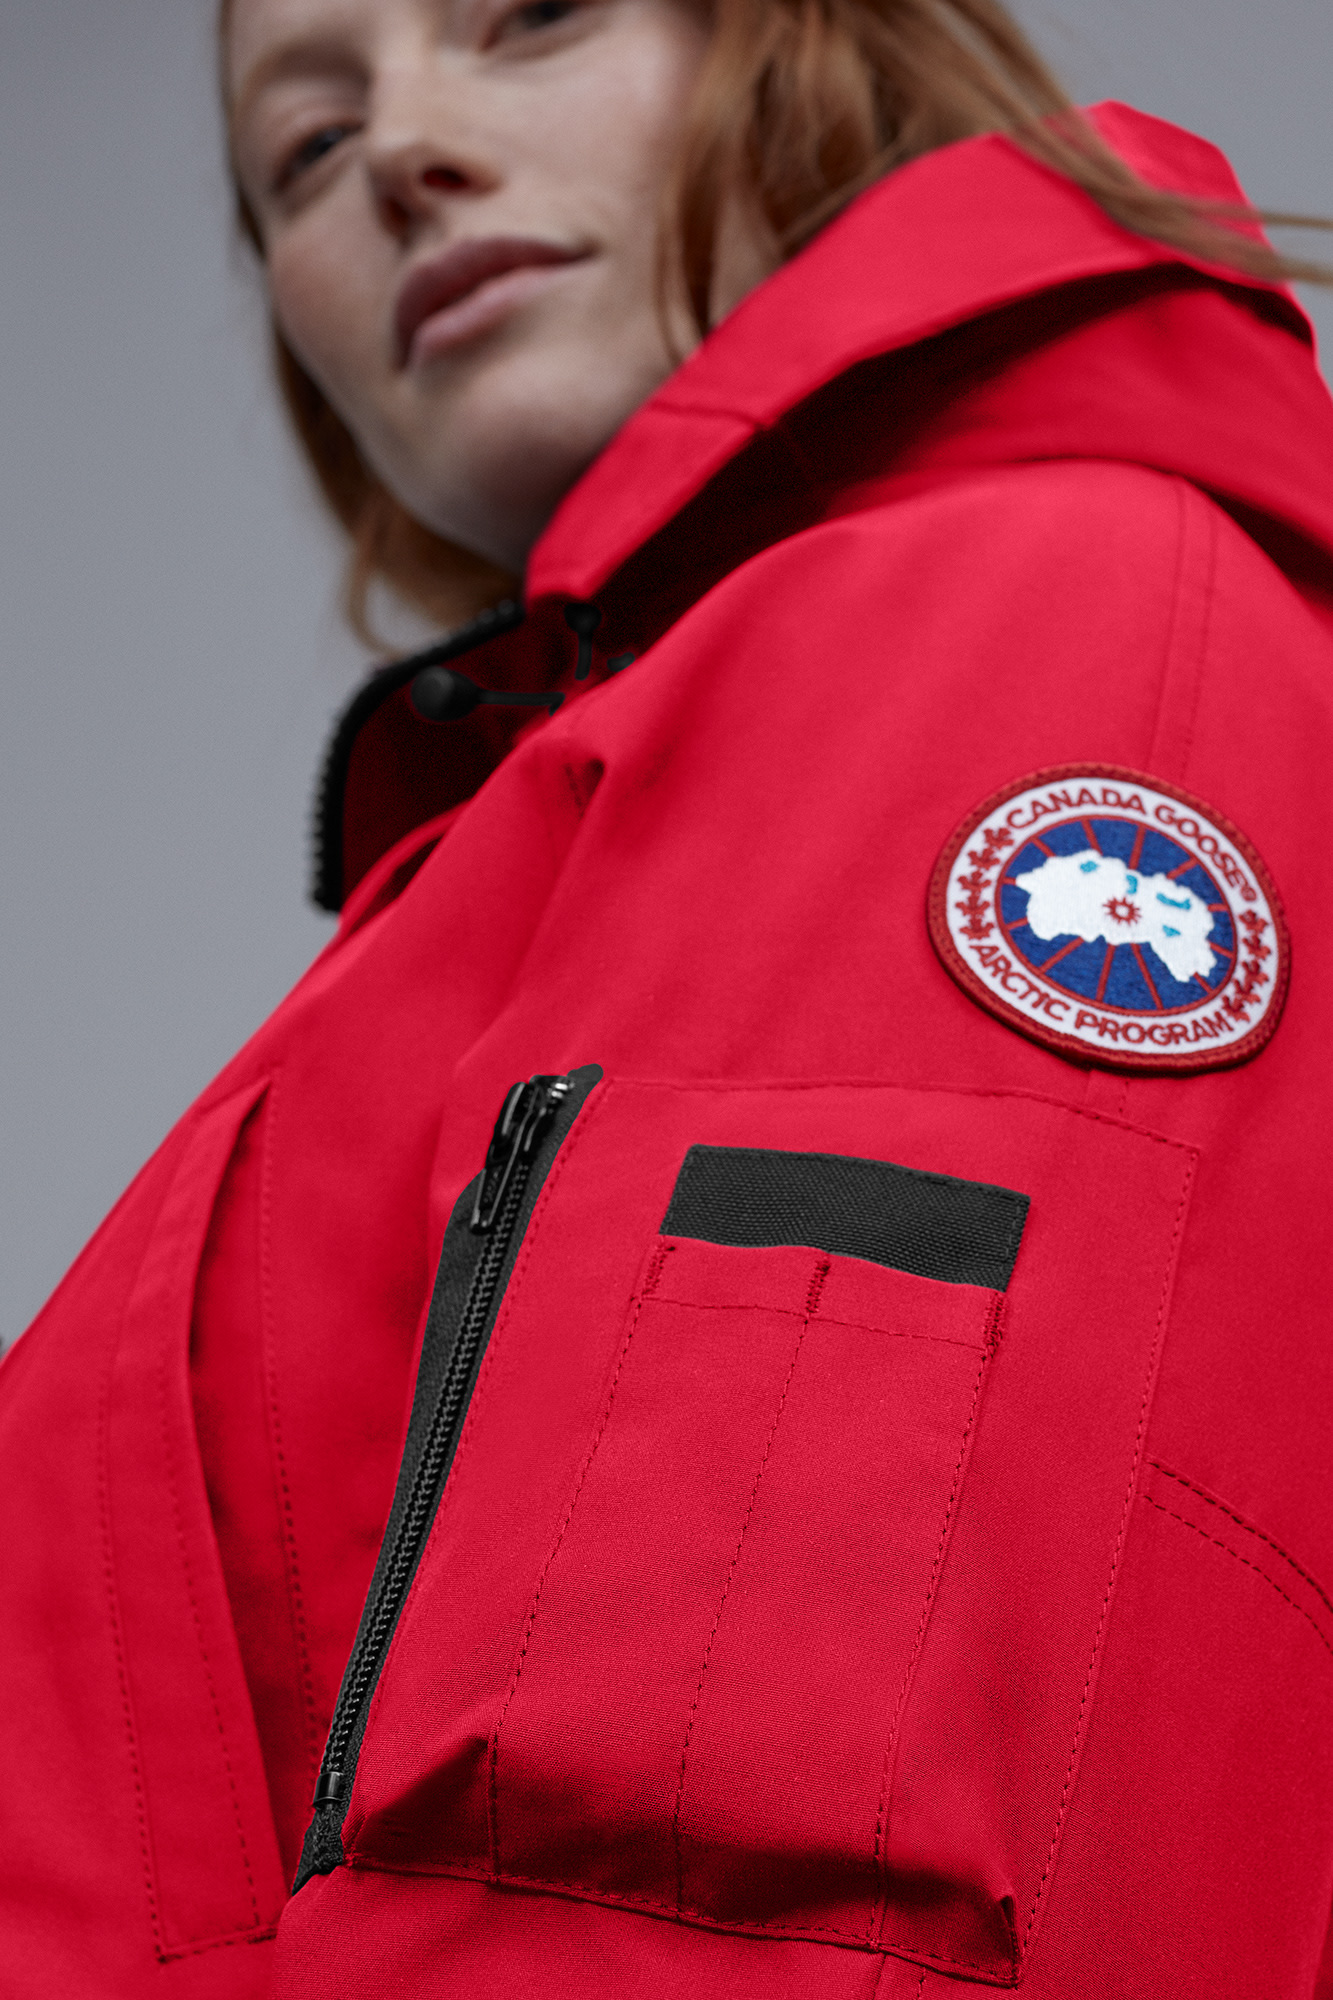 canada goose clothing for women Canada Goose Women's Jackets